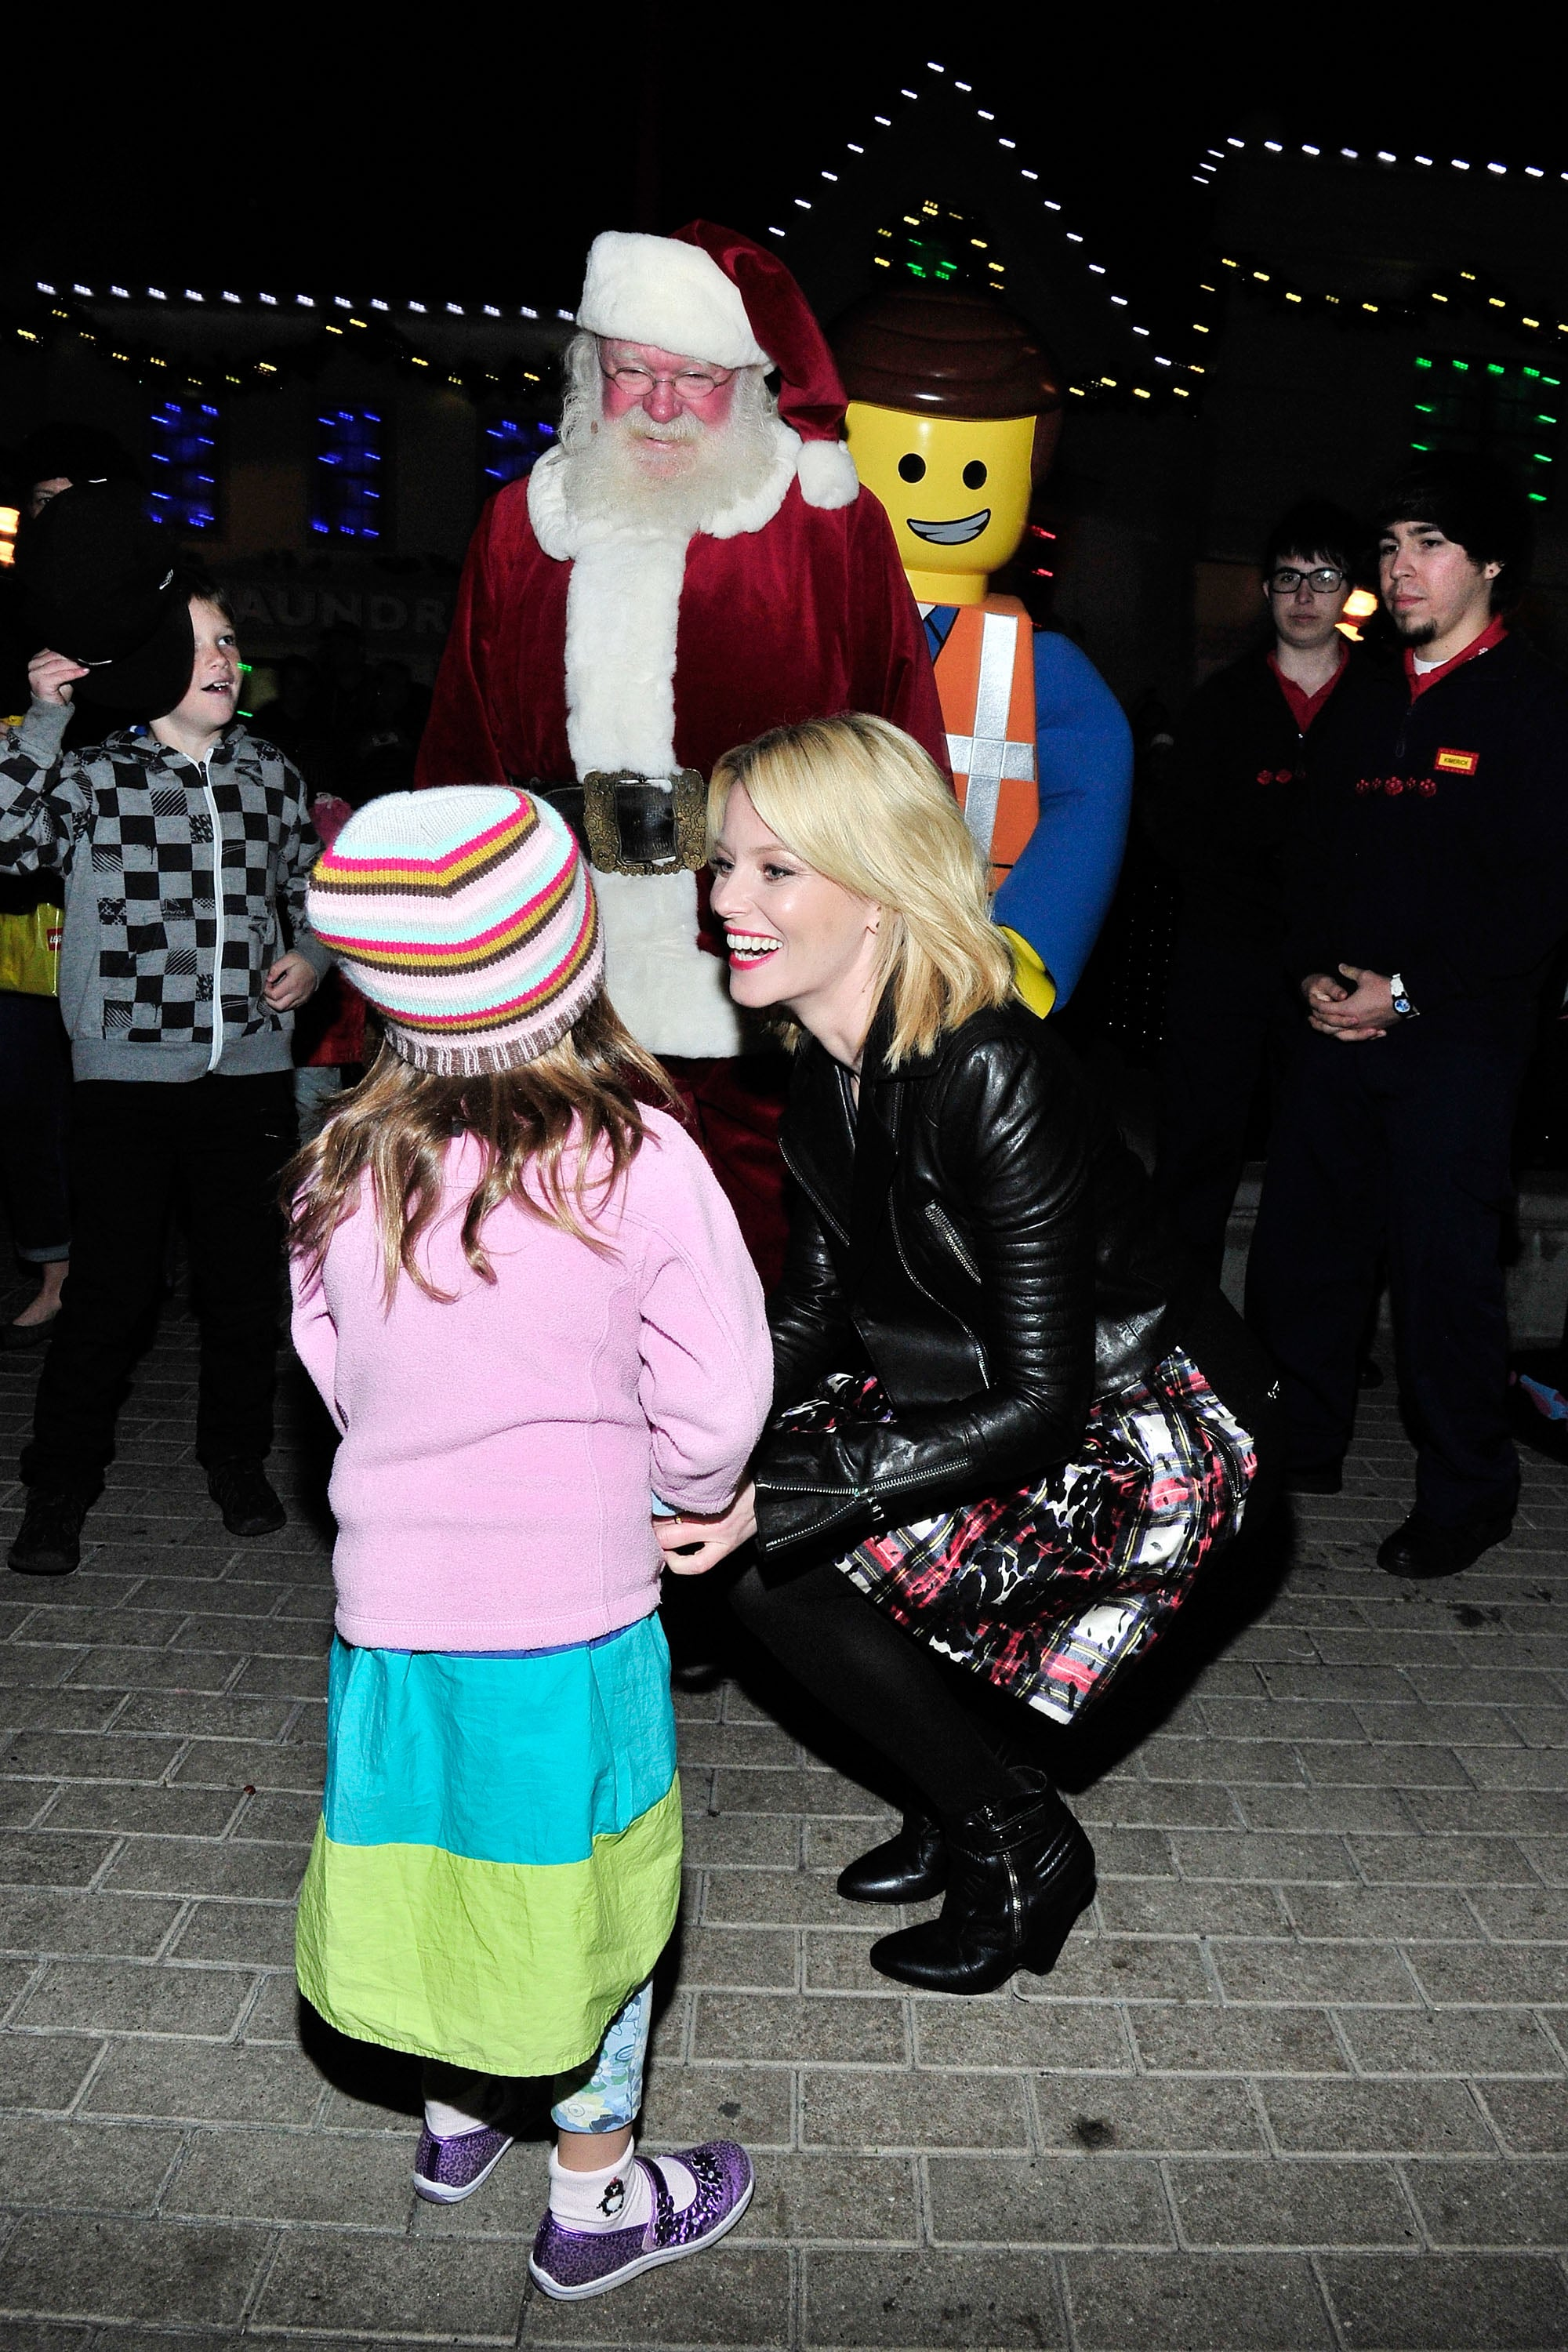 Elizabeth Banks greeted a pint-sized fan at Legoland California's tree lighting ceremony with an assist from Santa and a giant Lego.